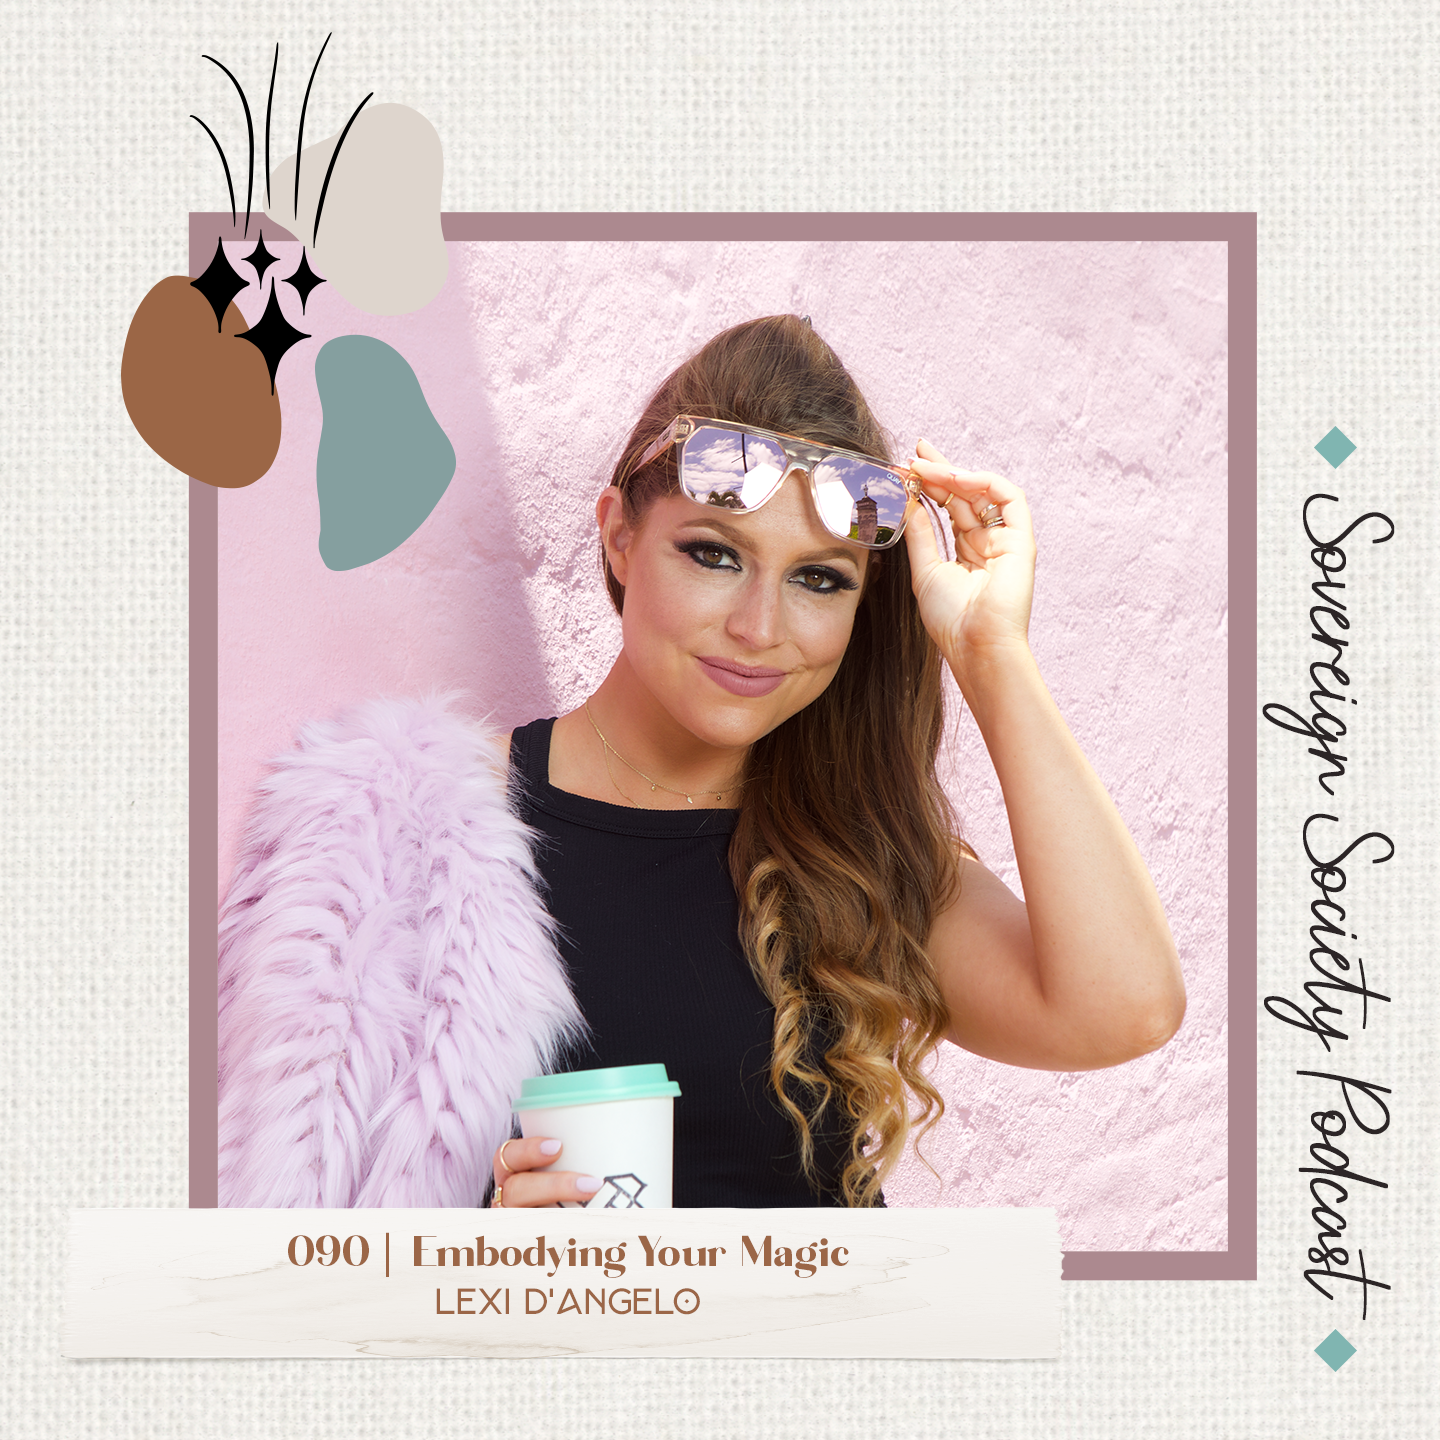 089 | Embodying Your Magic | Lexi D'Angelo